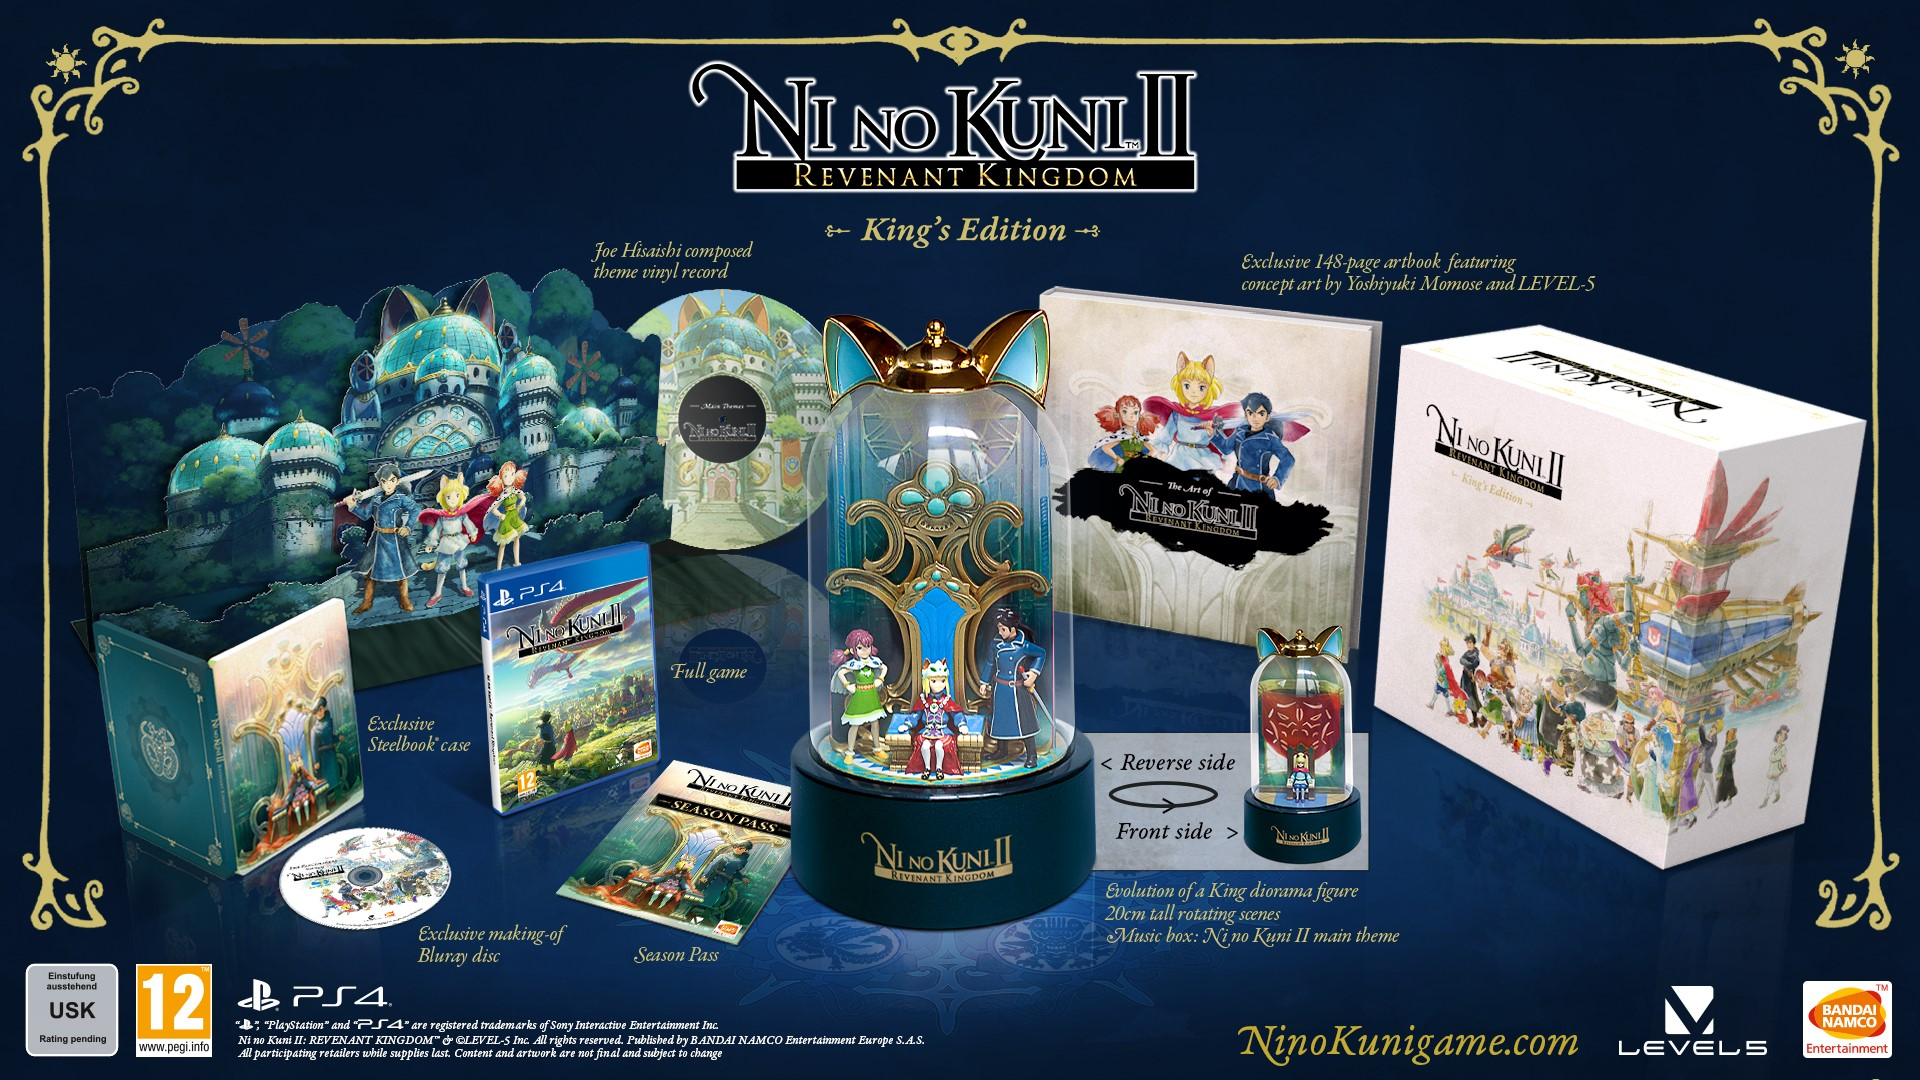 Ni_No_Kuni_II_Kings_Edition.jpg